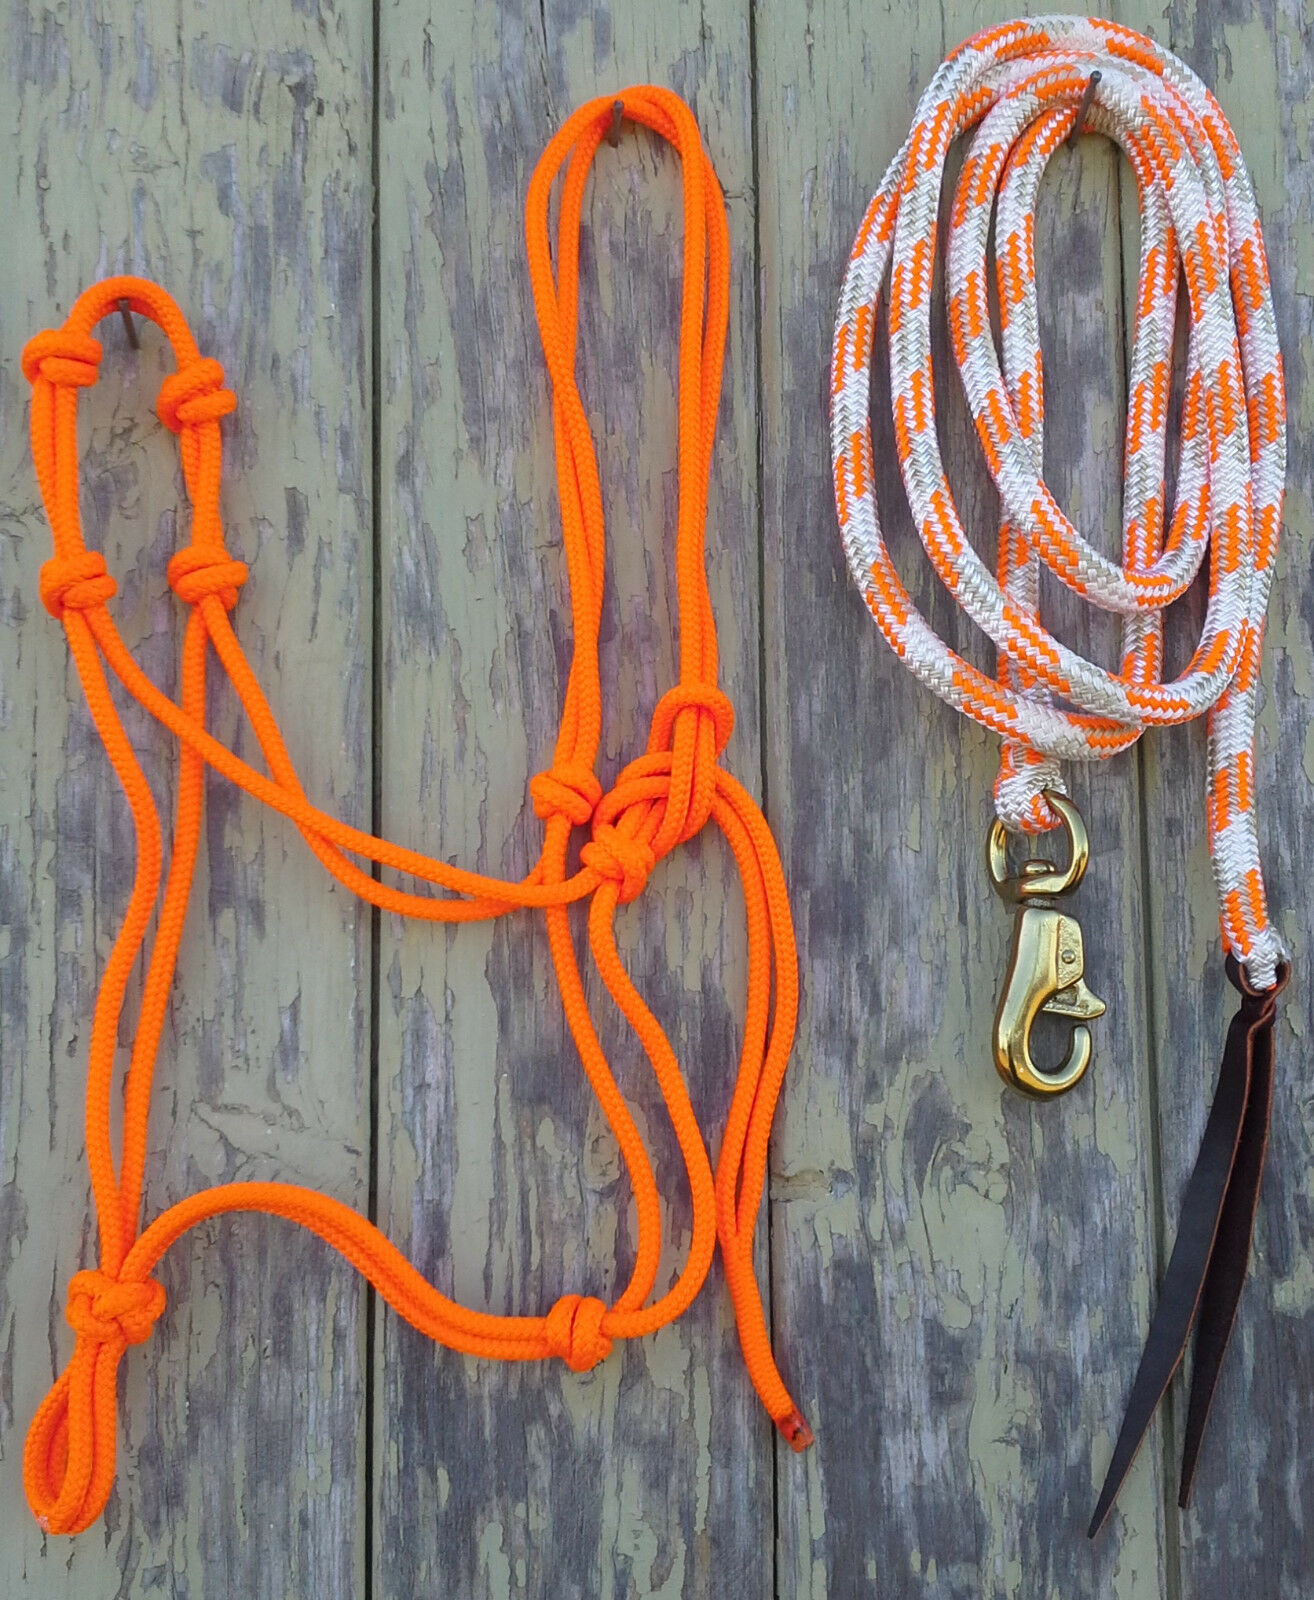 orange 4 Knot Rope Halter & 14ft Lead Rope 12mm Rope w Brass Trigger Bull Snap